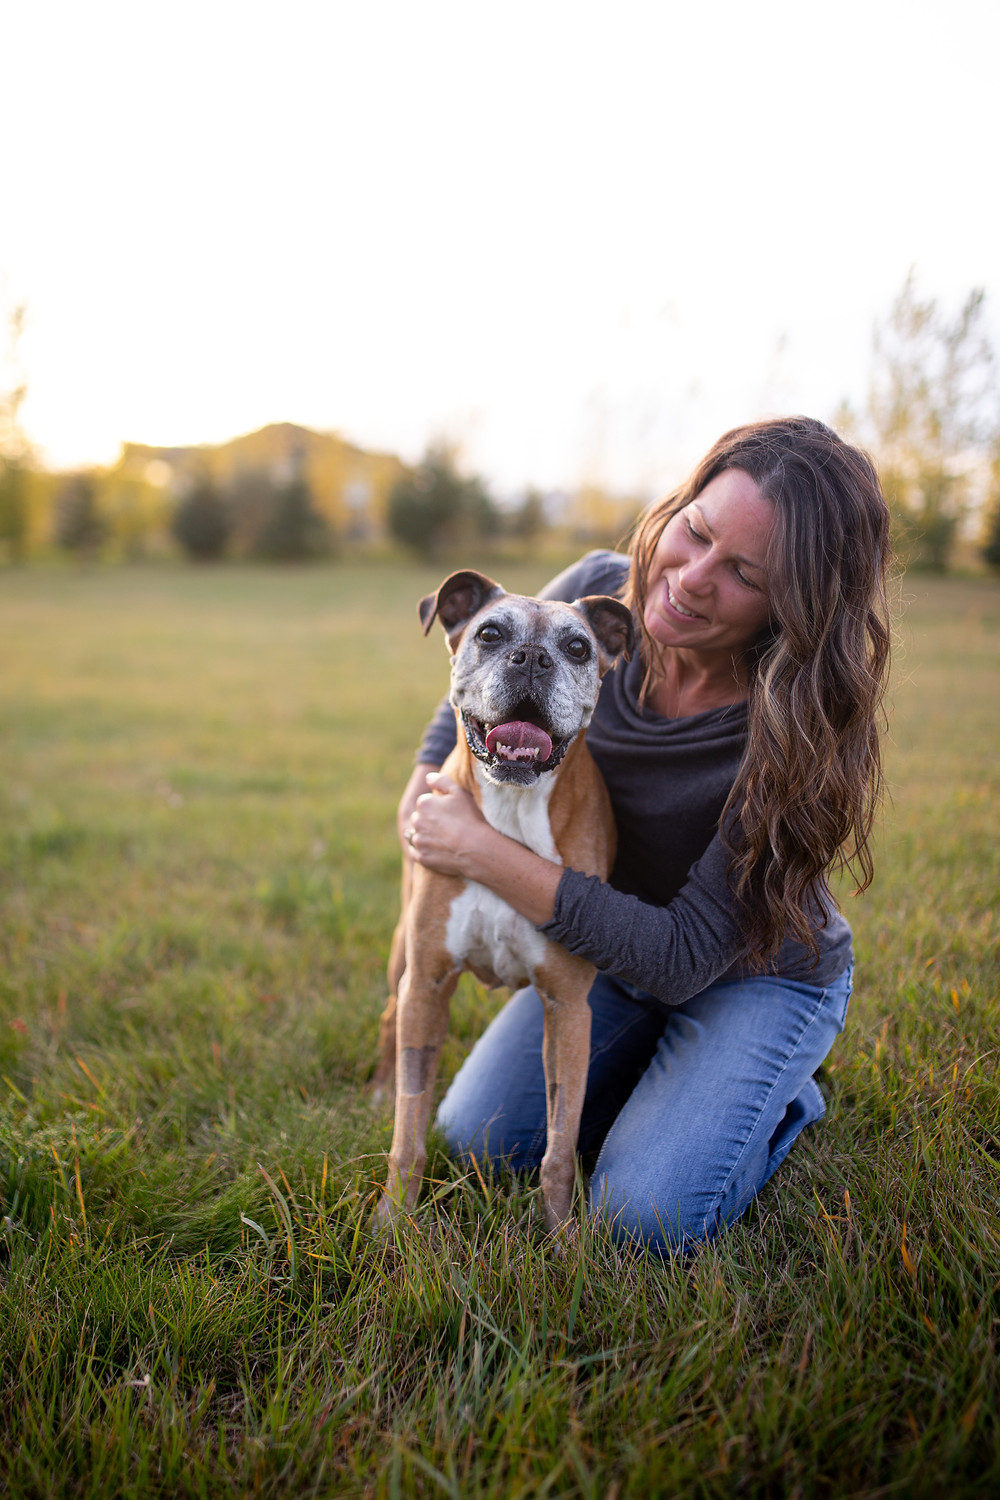 Dr. Colleen Dell and her dog Kisbey